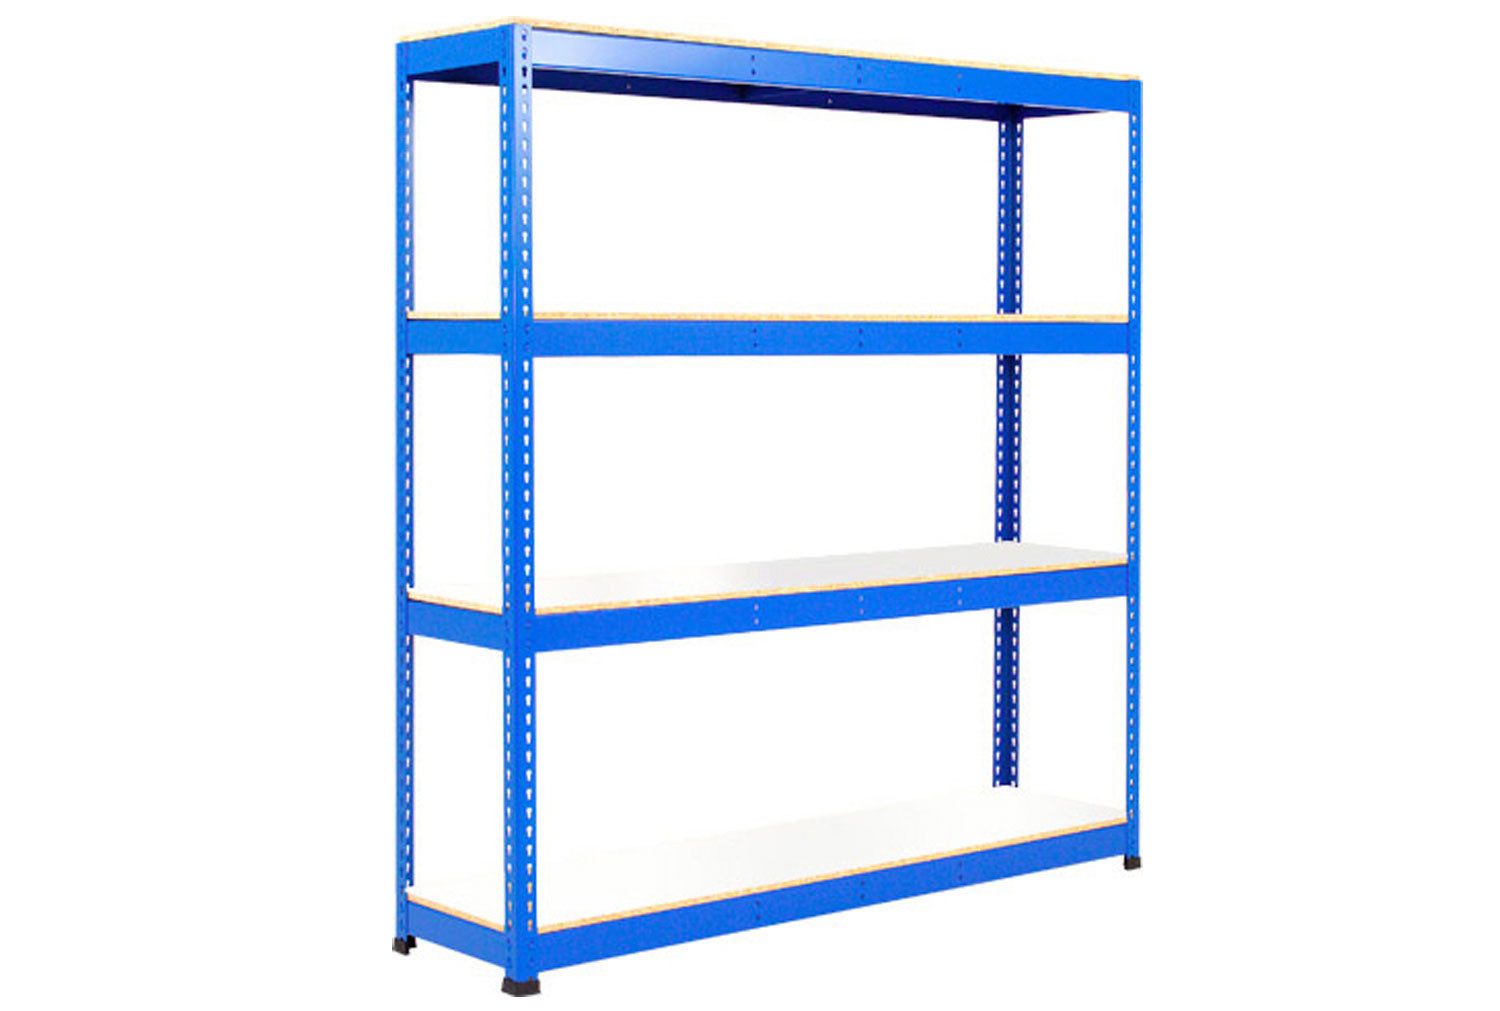 Rapid 1 Heavy Duty Shelving With 4 Melamine Shelves 1525wx1980h (Blue)